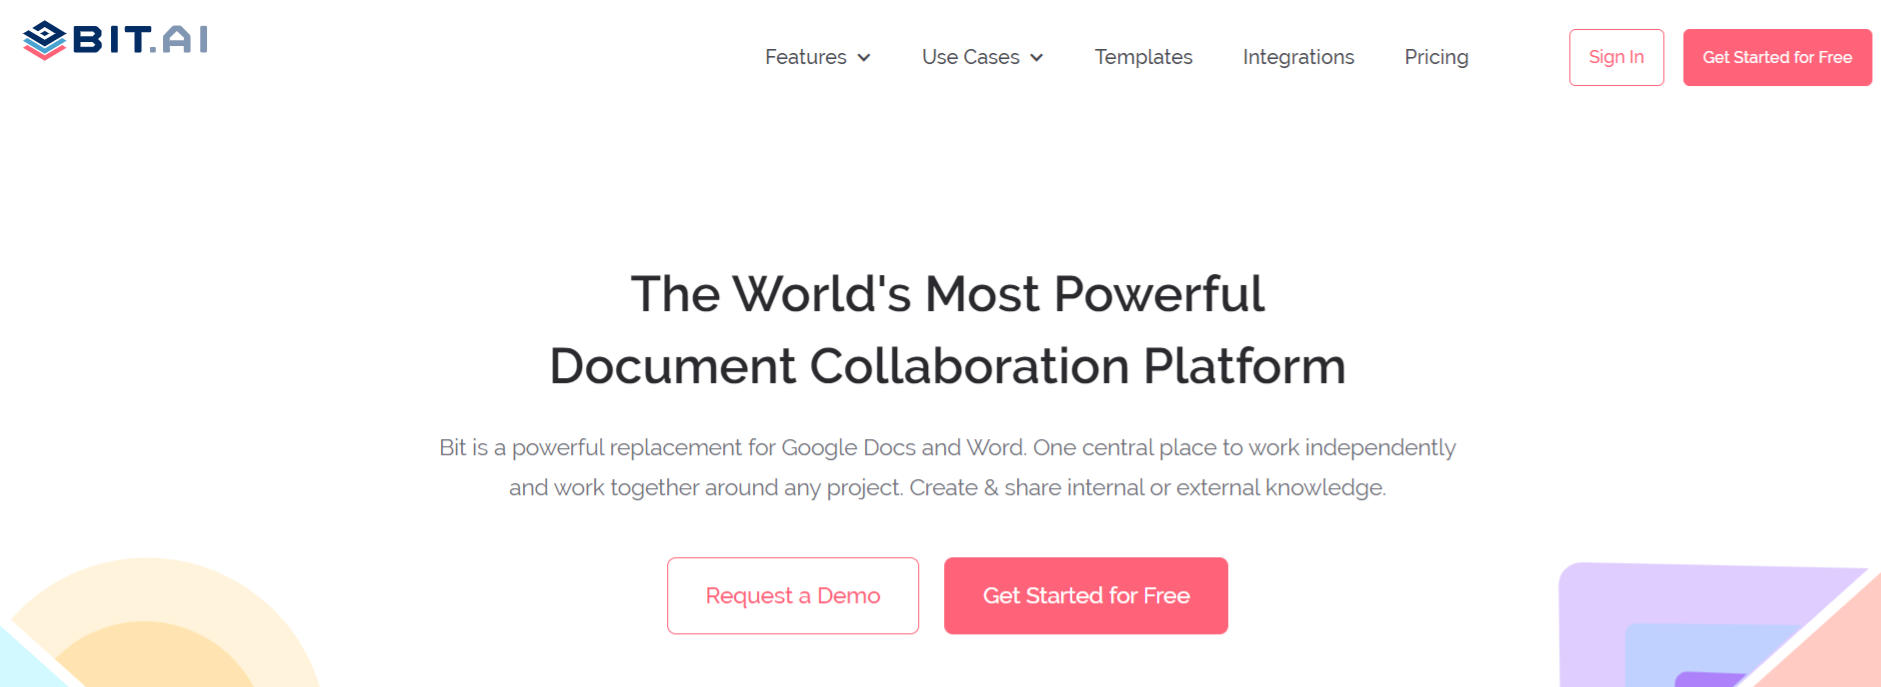 Bit.ai: Document collaboration tool